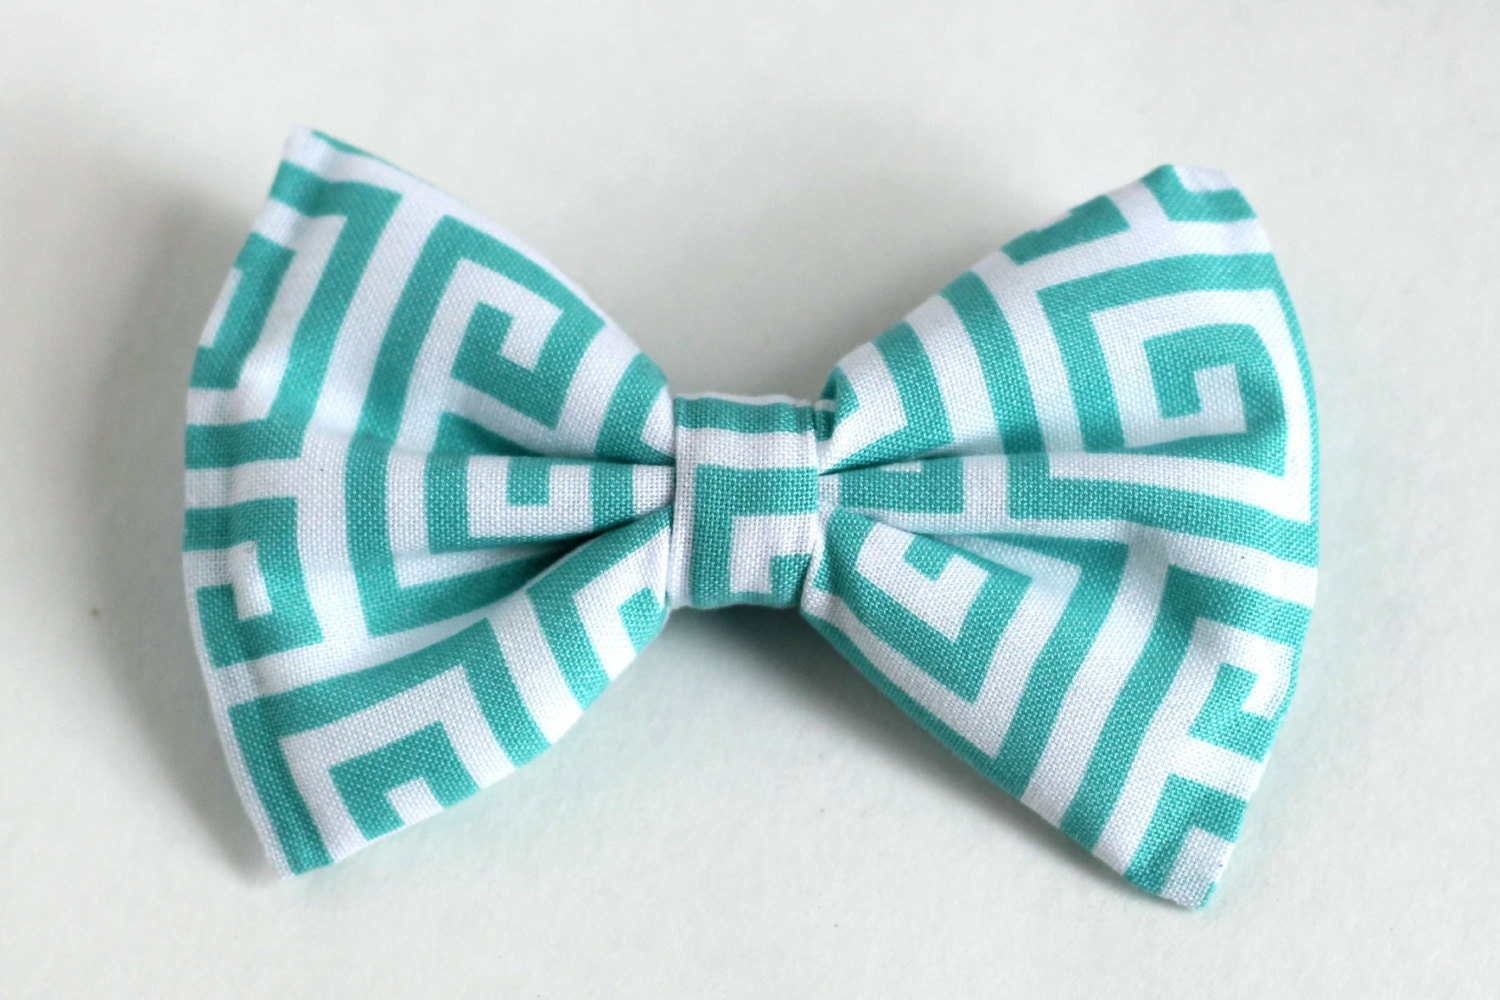 Boys Bow Tie Teal Mint Turquoise Blue Greek Key, Newborn, Baby, Child, Little Boy, Great for Special Occasion Wedding or Photo Prop - lollyludesigns